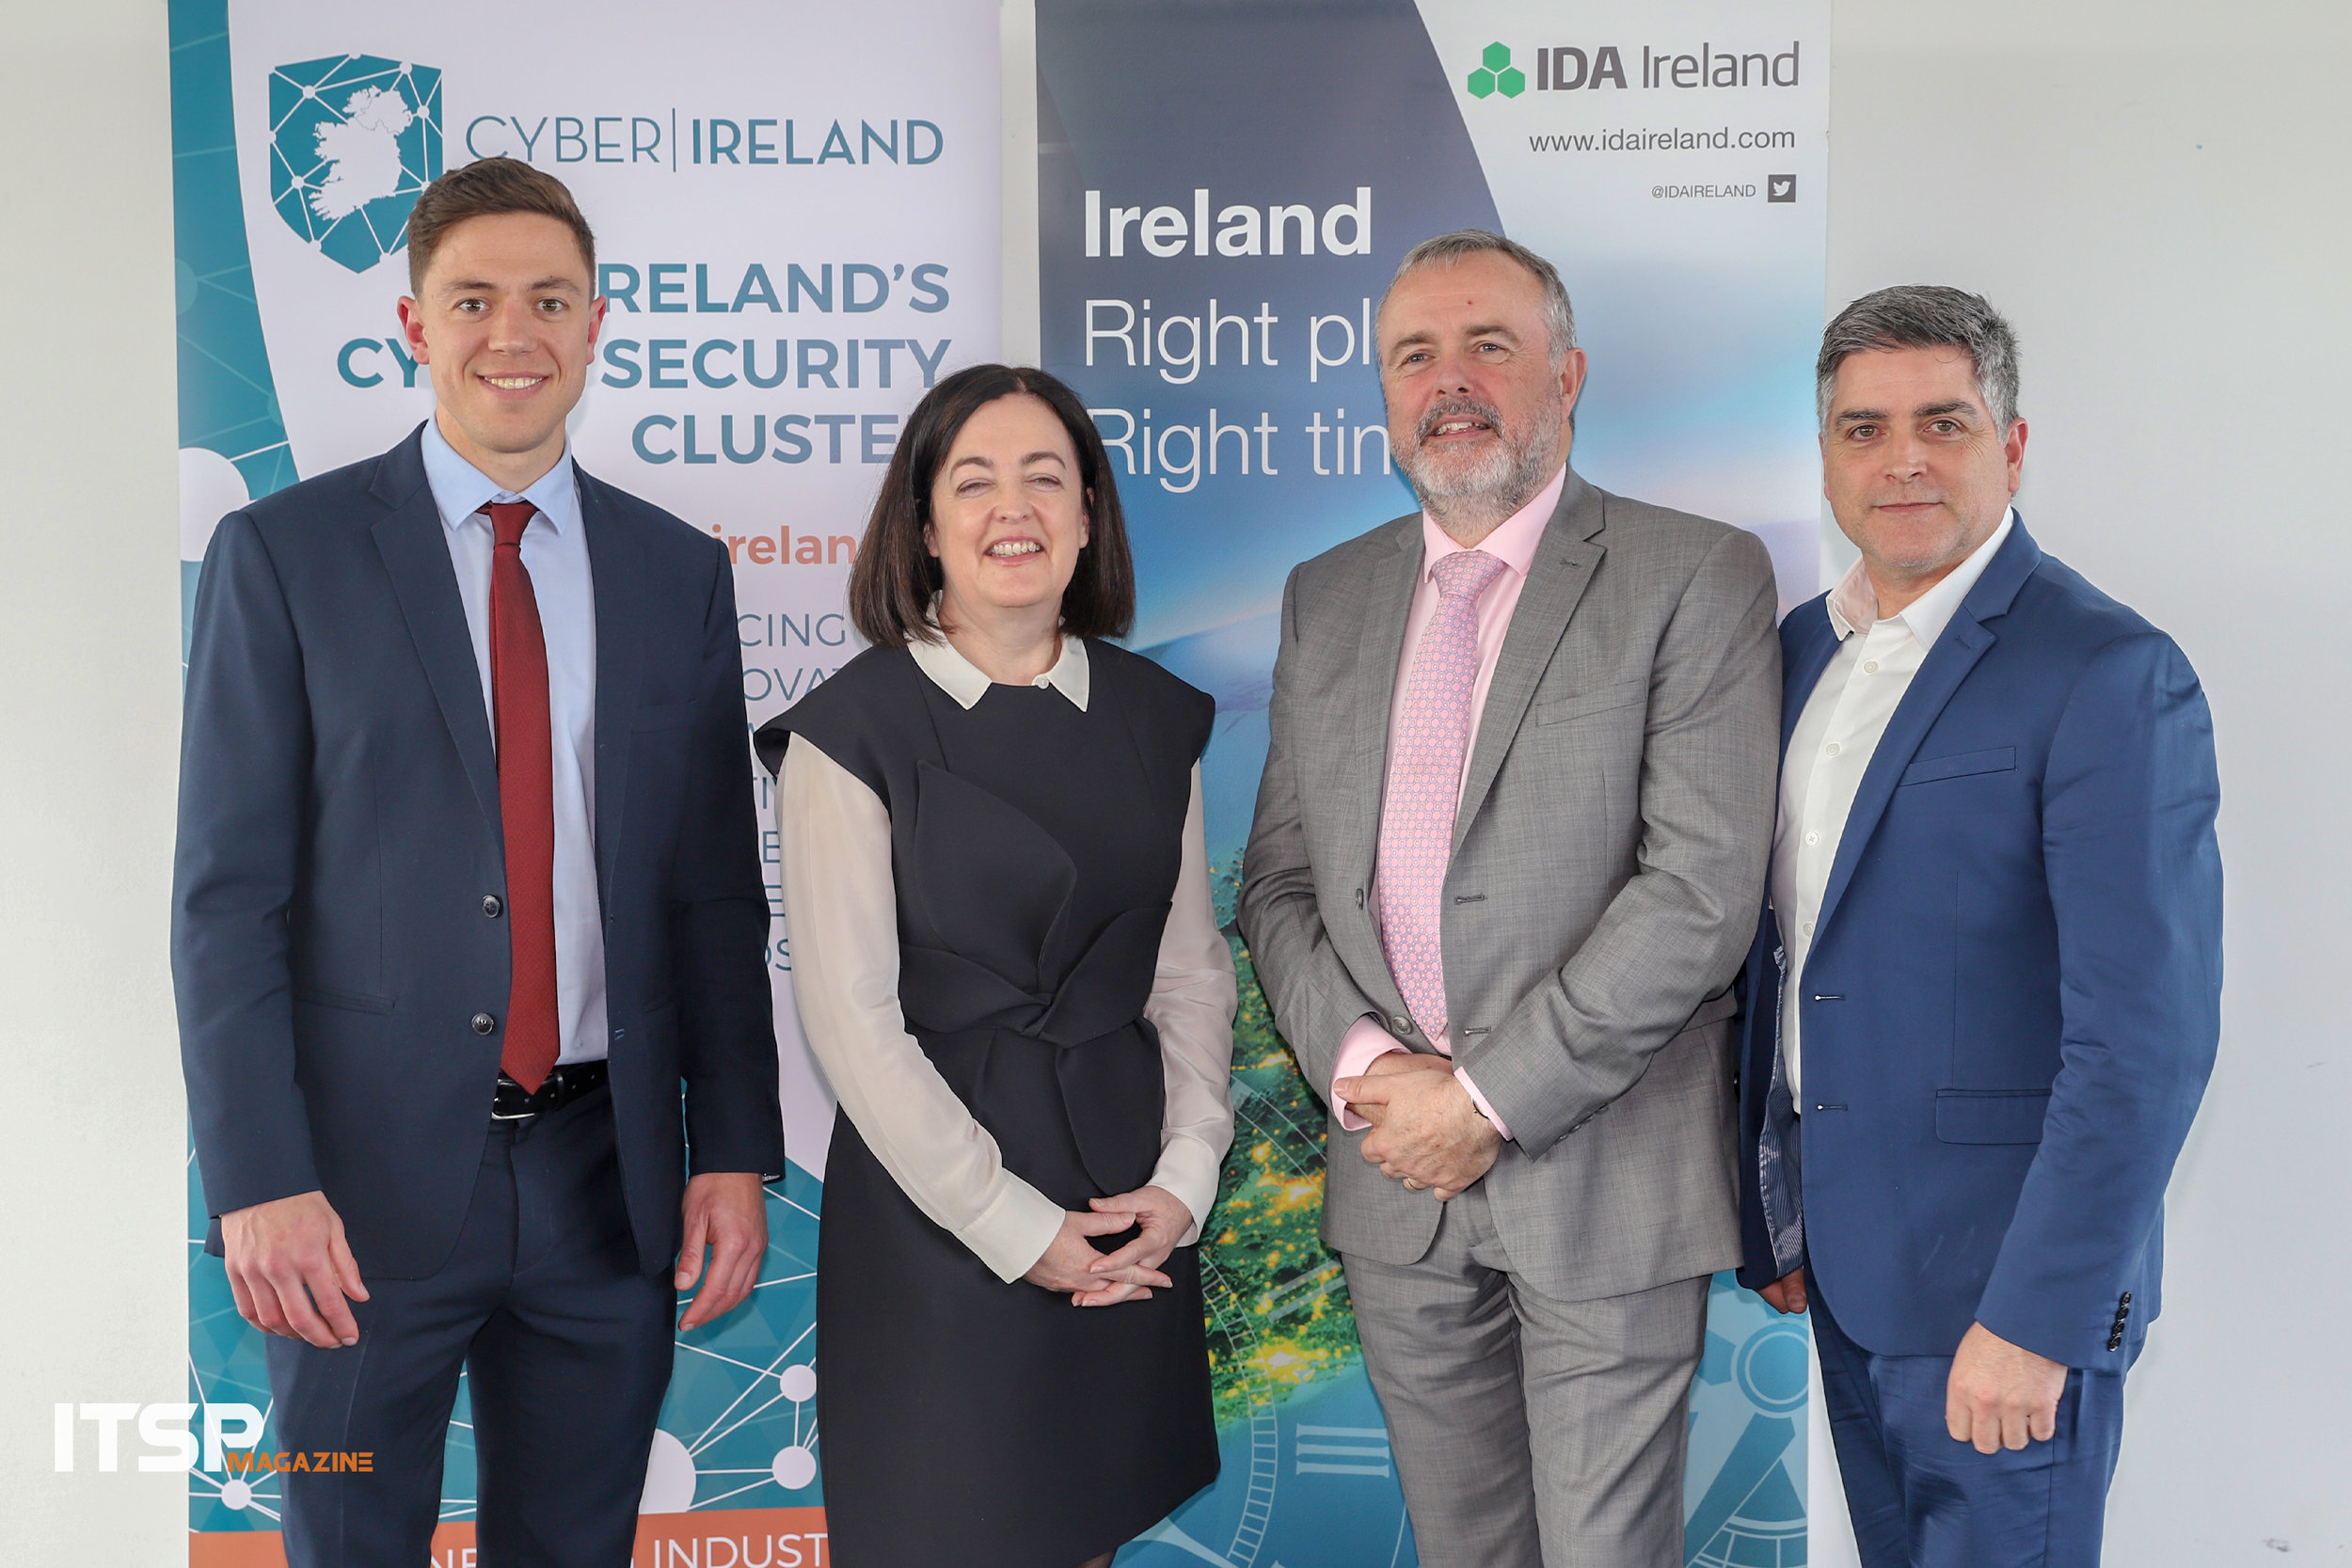 (L-R) Dr. Eoin Byrne, Cyber Ireland's cluster manager | Jacky Fox, Cyber & IT Forensic Lead at Deloitte | Pat Larkin, CEO at Ward Solutions | Sean Martin, Editor-in-Chief at ITSPmagazine